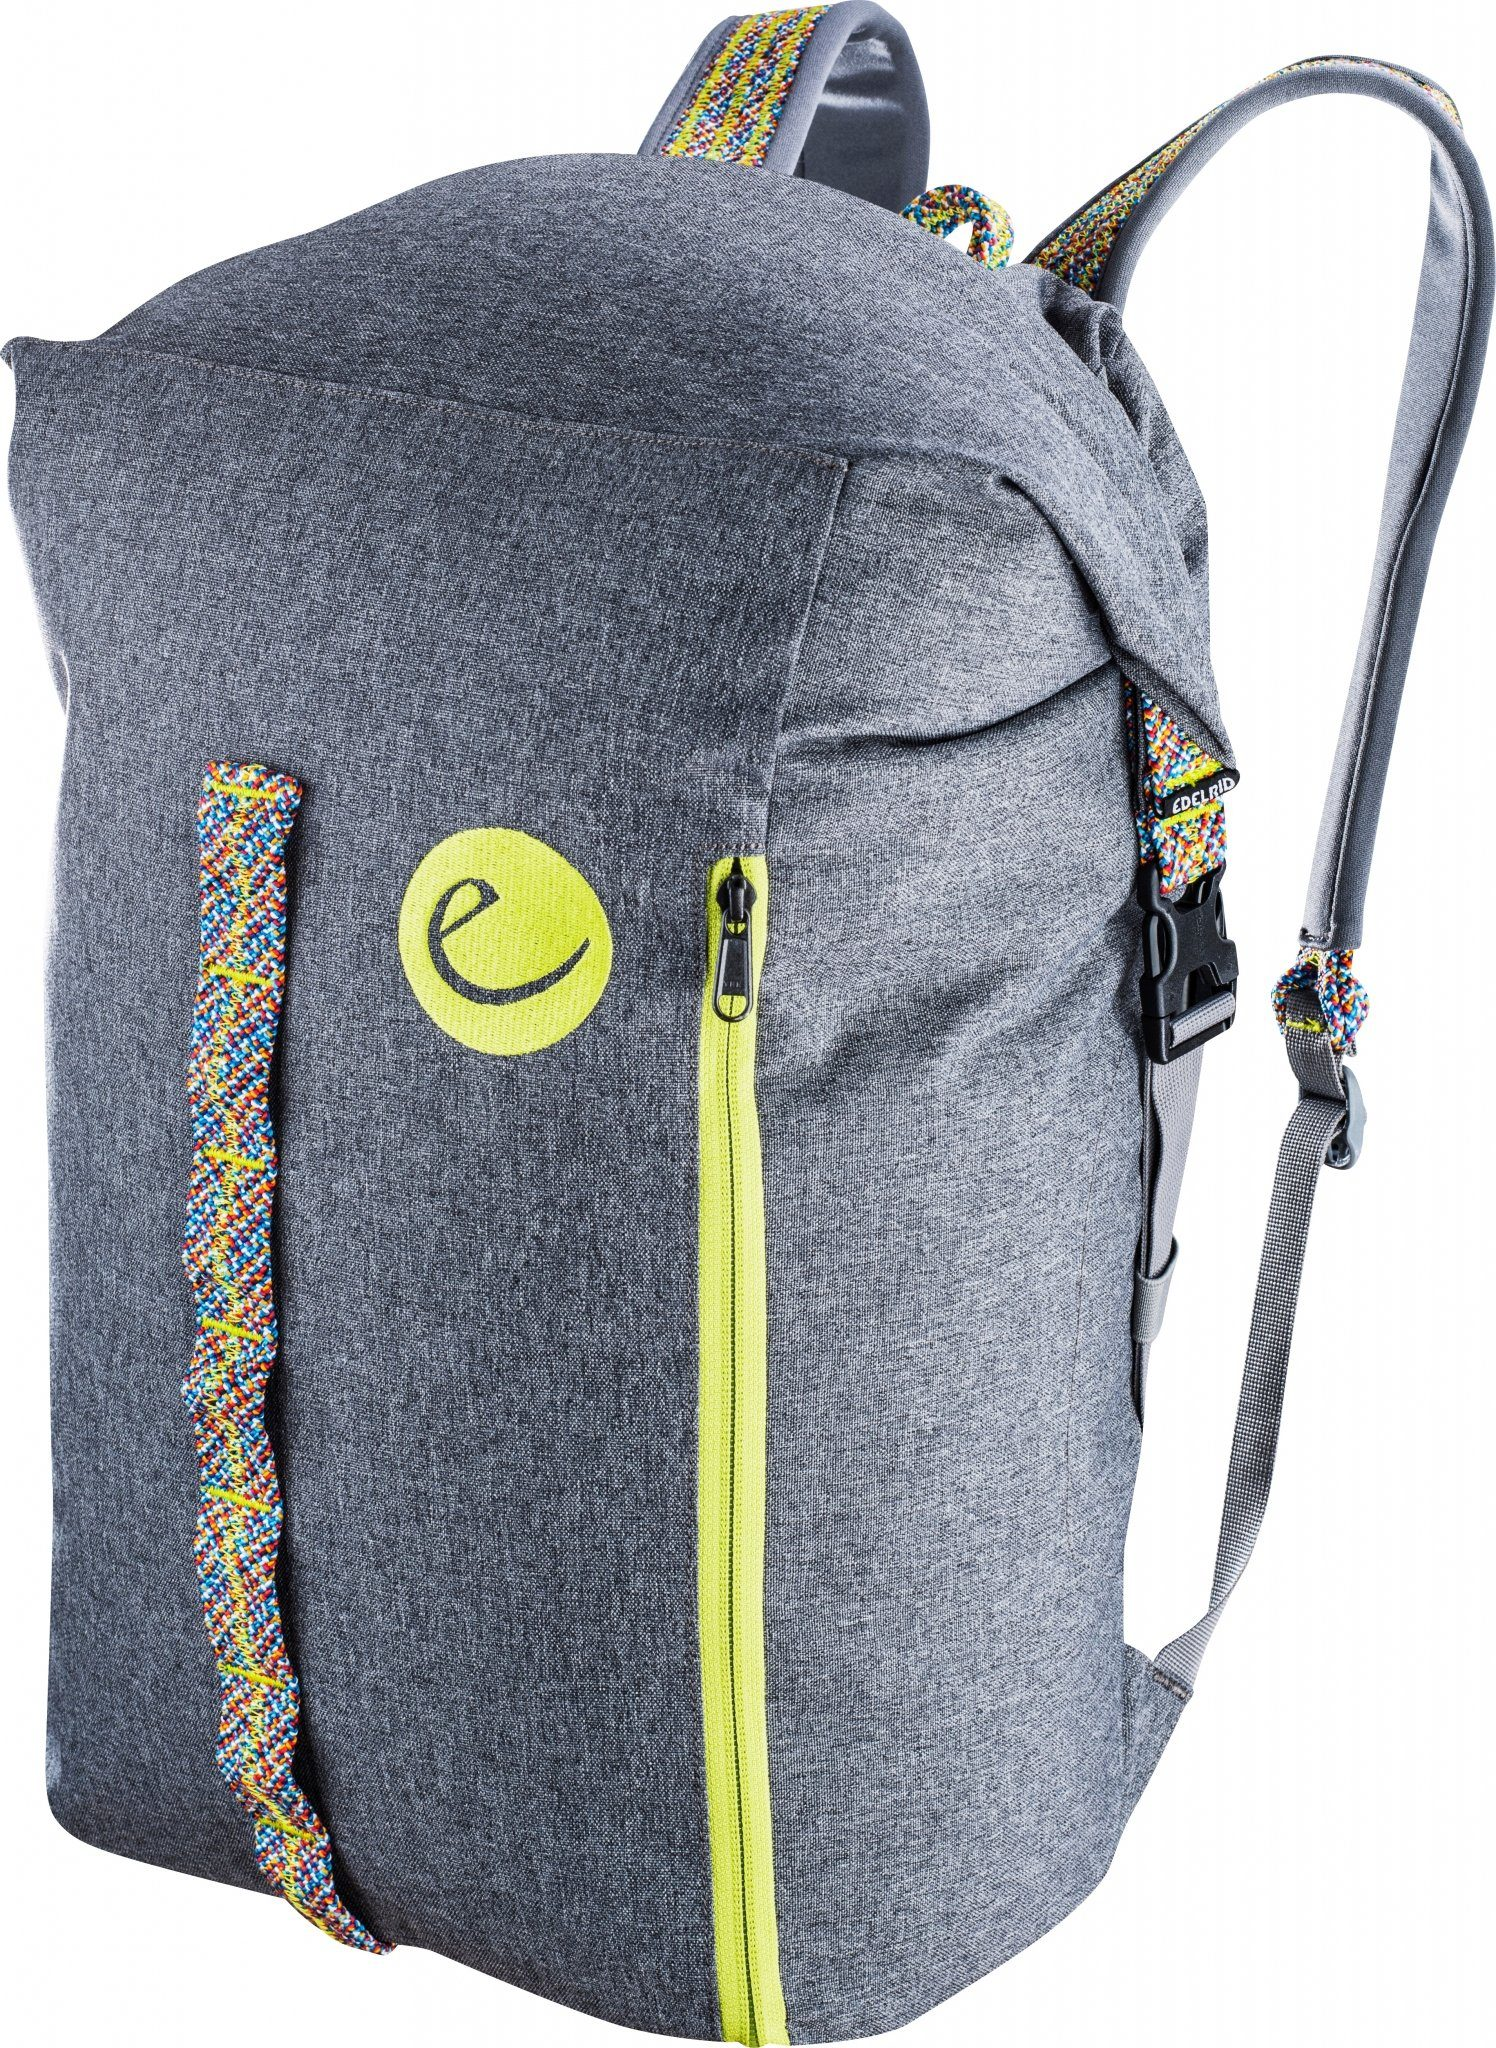 Edelrid Wanderrucksack »City Hauler 30 Backpack«